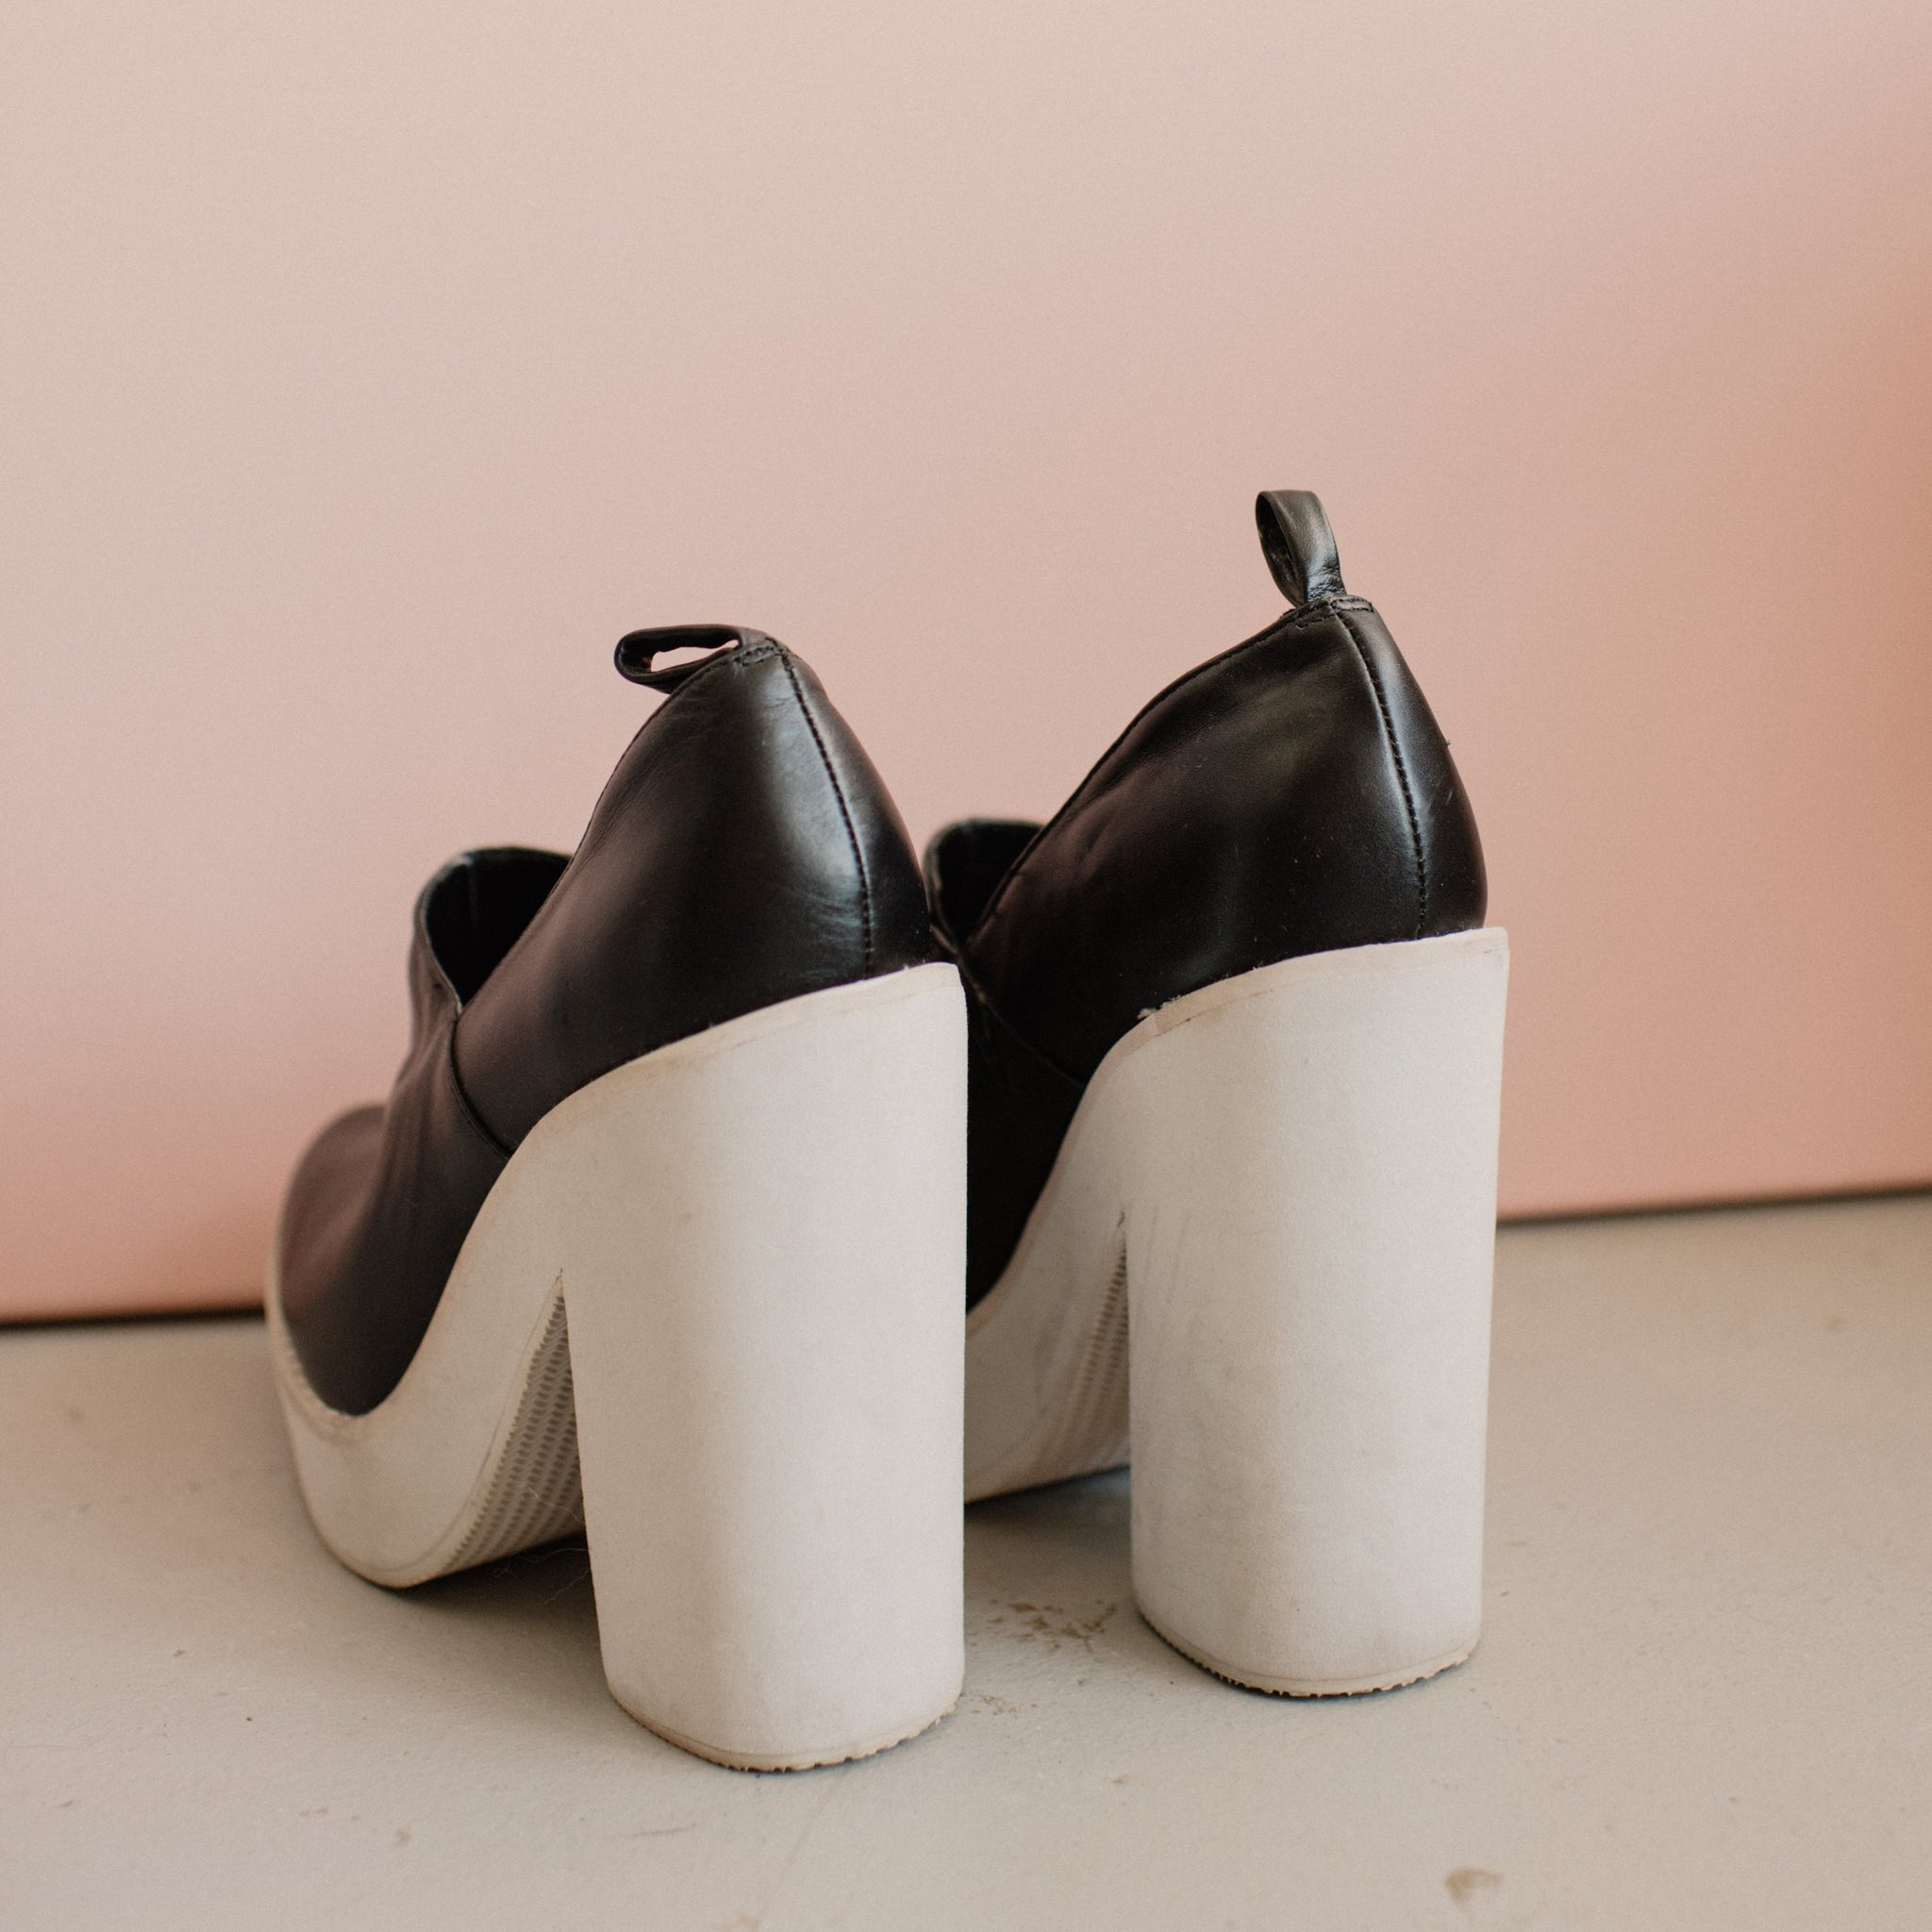 Vintage Black + White Platform Booties / 9 - Closed Caption